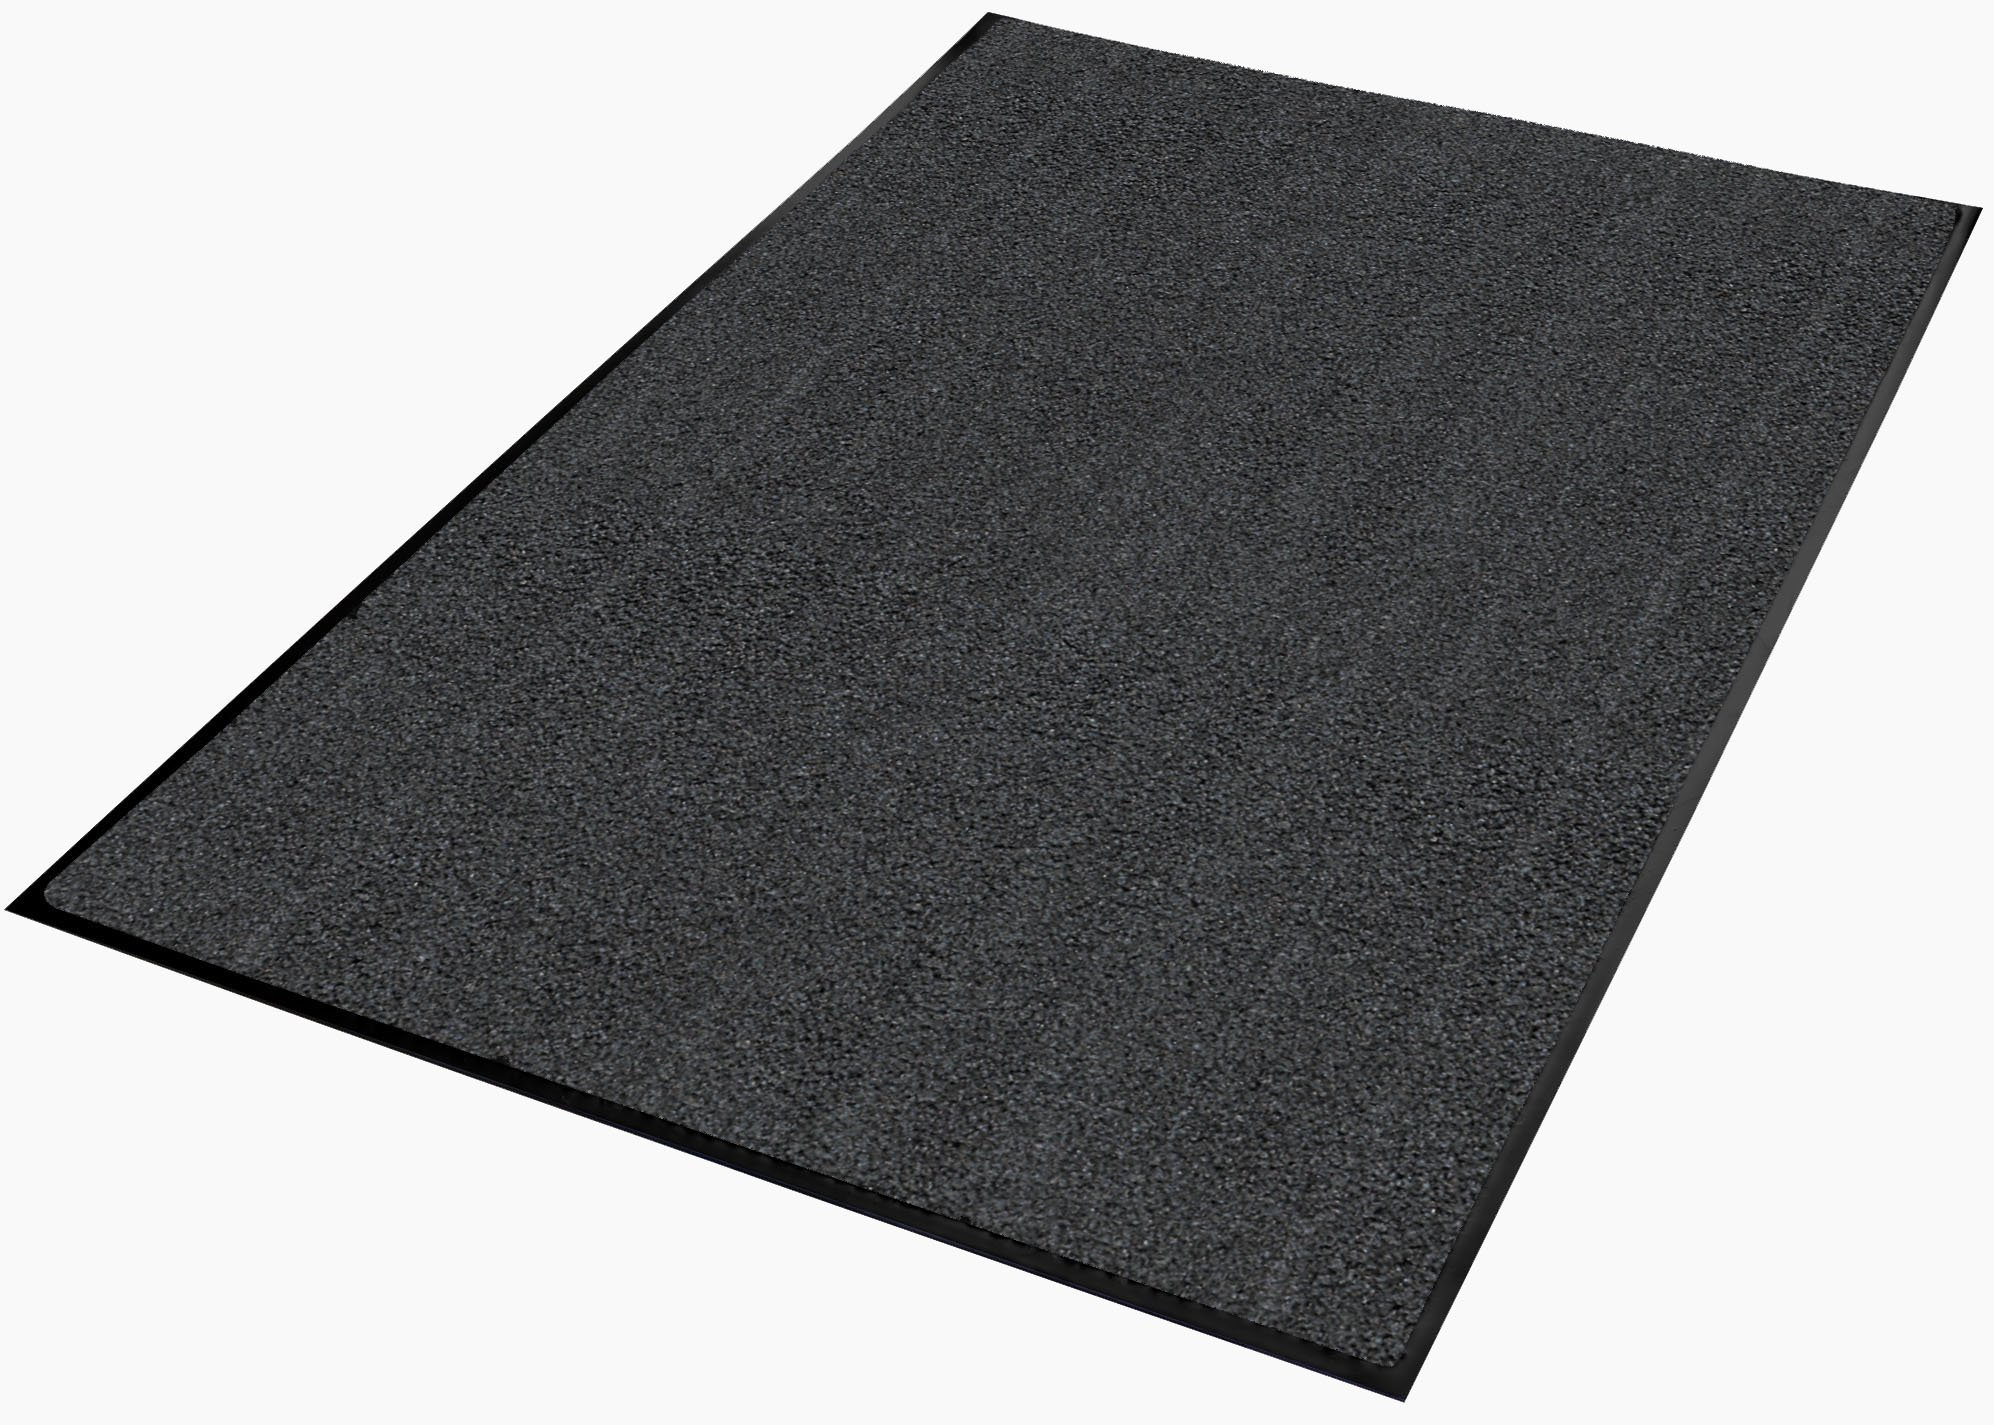 Guardian Platinum Series Indoor Wiper Floor Mat, Rubber with Nylon Carpet, 3'x15', Grey by Guardian (Image #5)